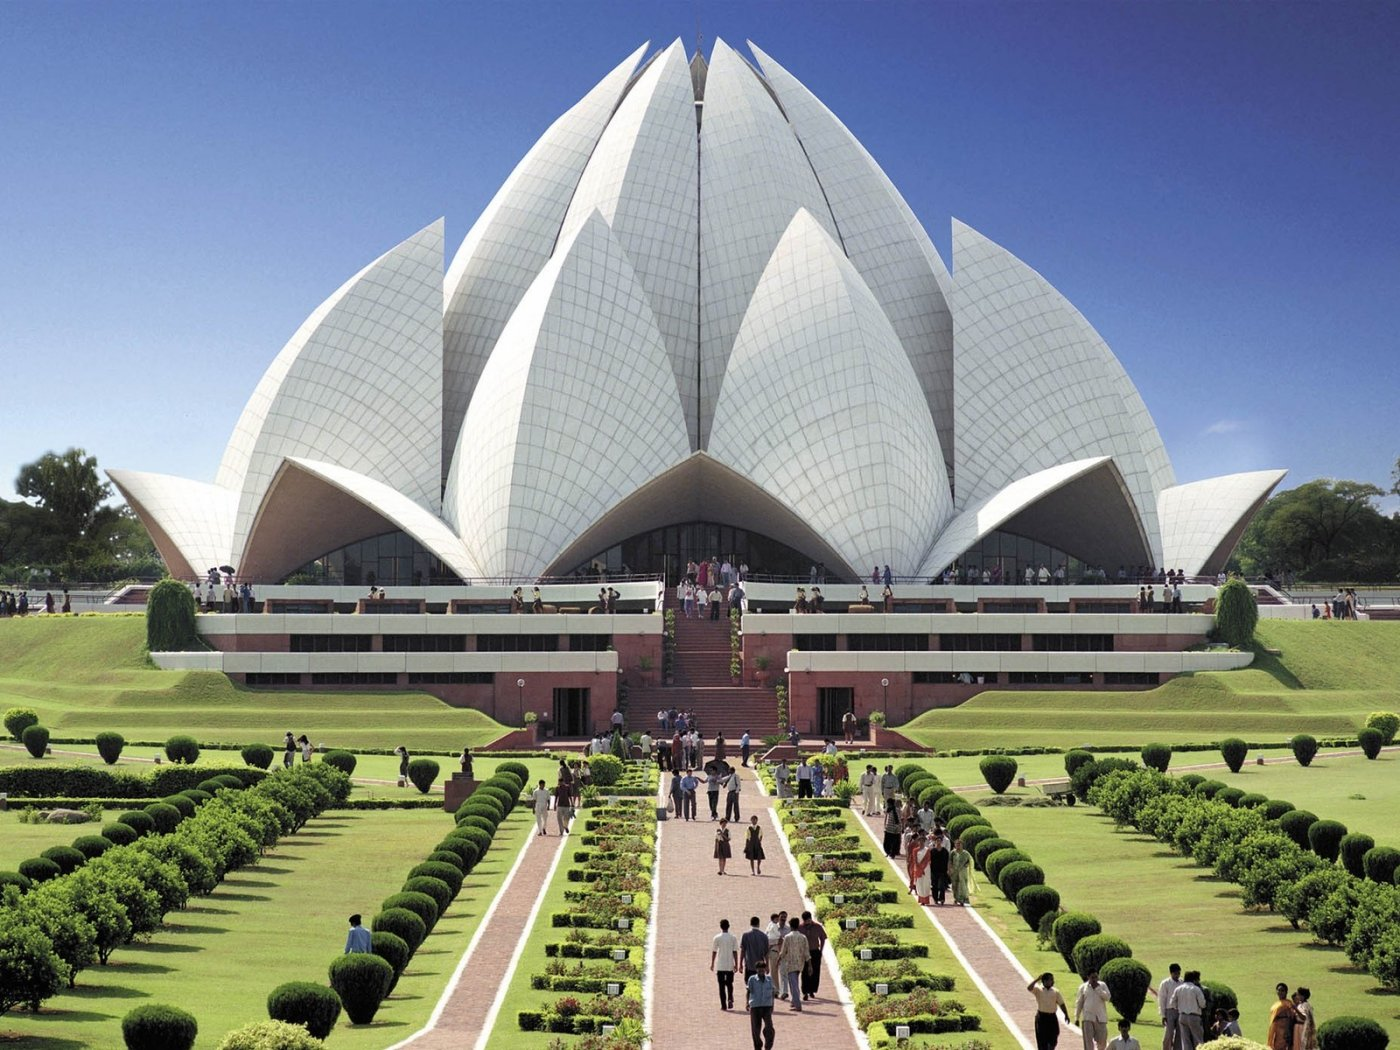 Modern Architecture Hd modern architecture lotus temple hd widescreen 303287 wallpaper